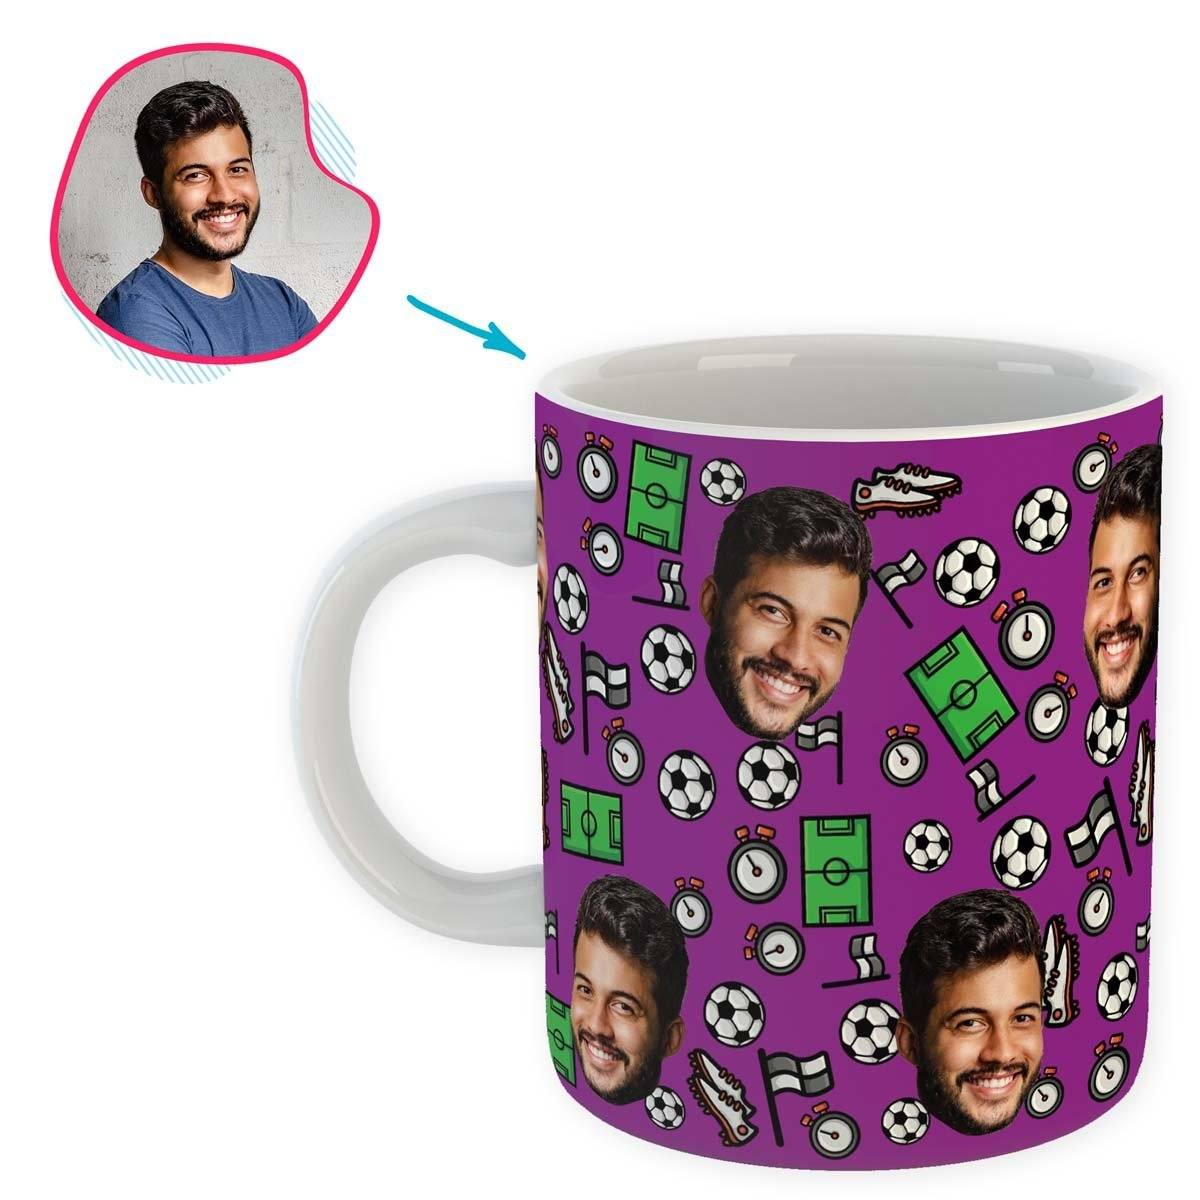 purple Football mug personalized with photo of face printed on it